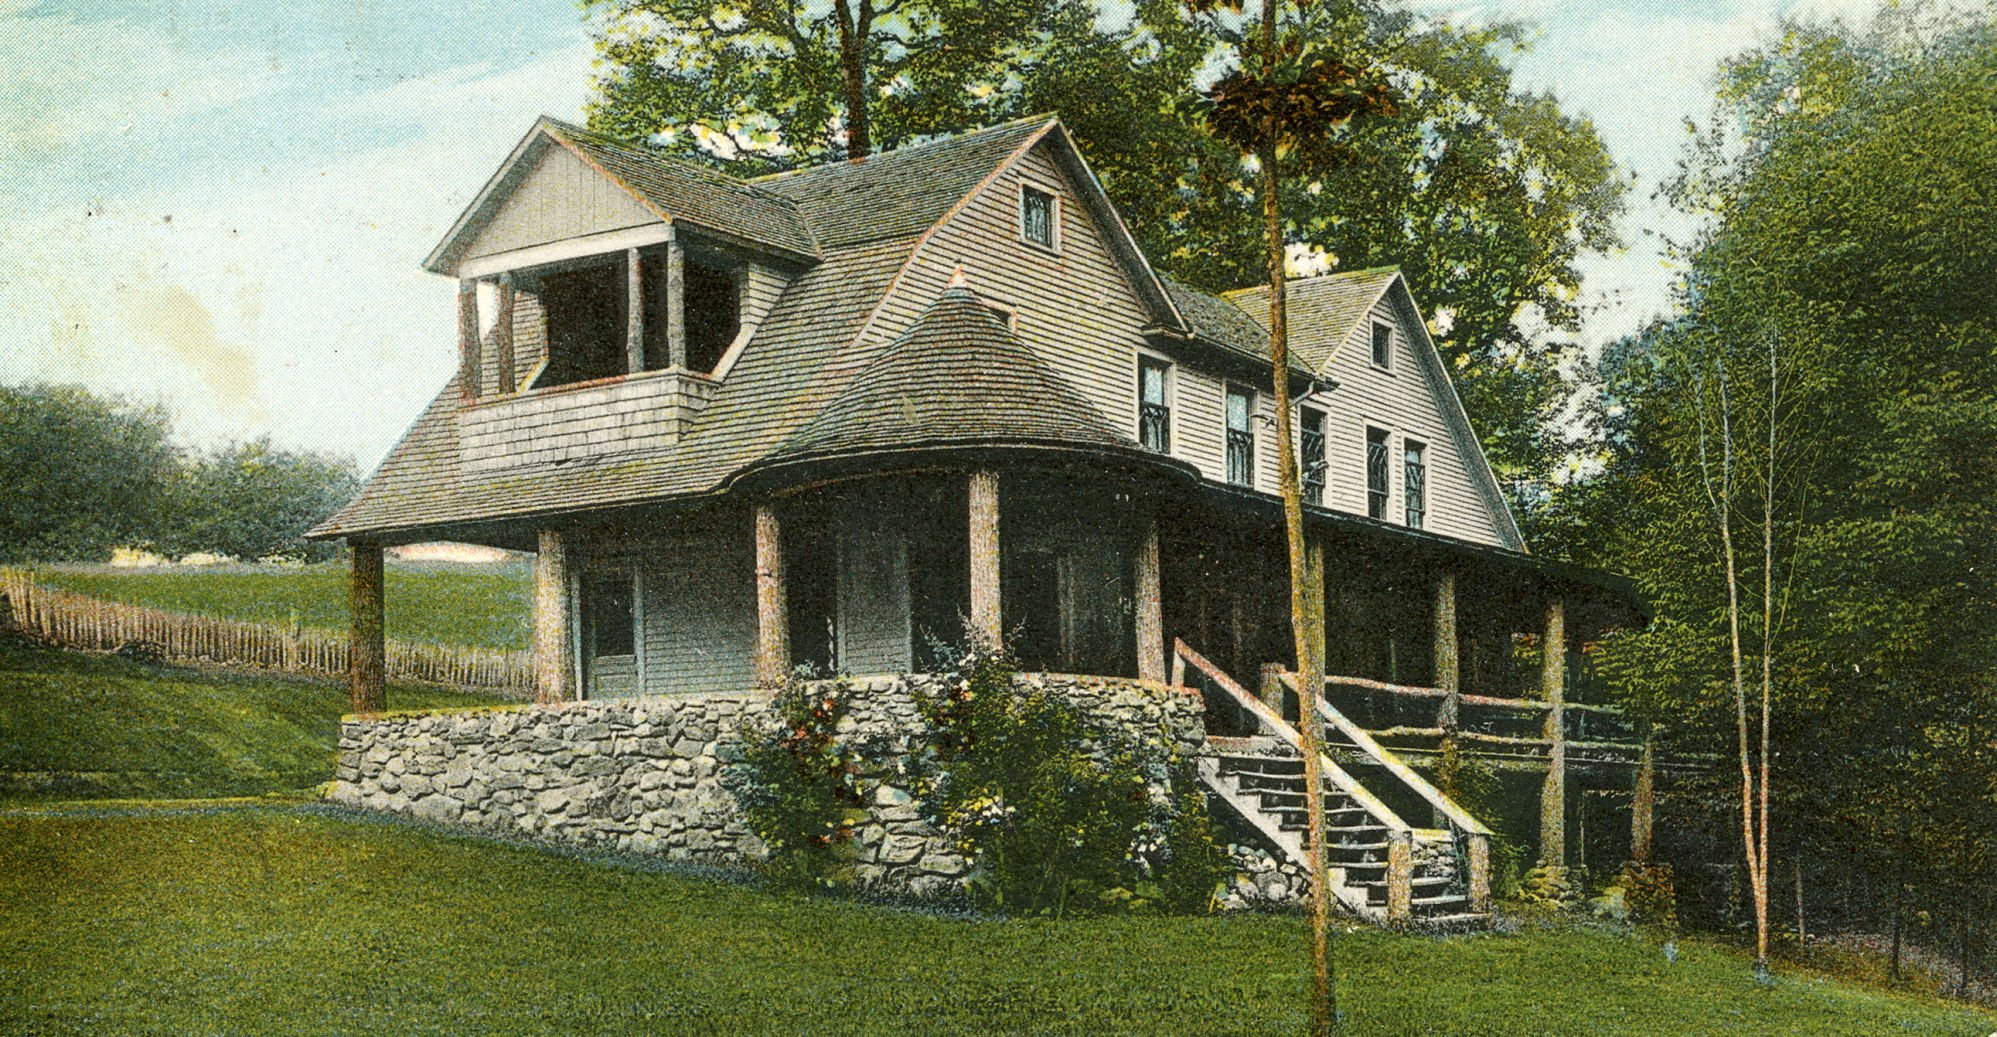 Then & Now: The lodge at Fleming Falls resort 1917